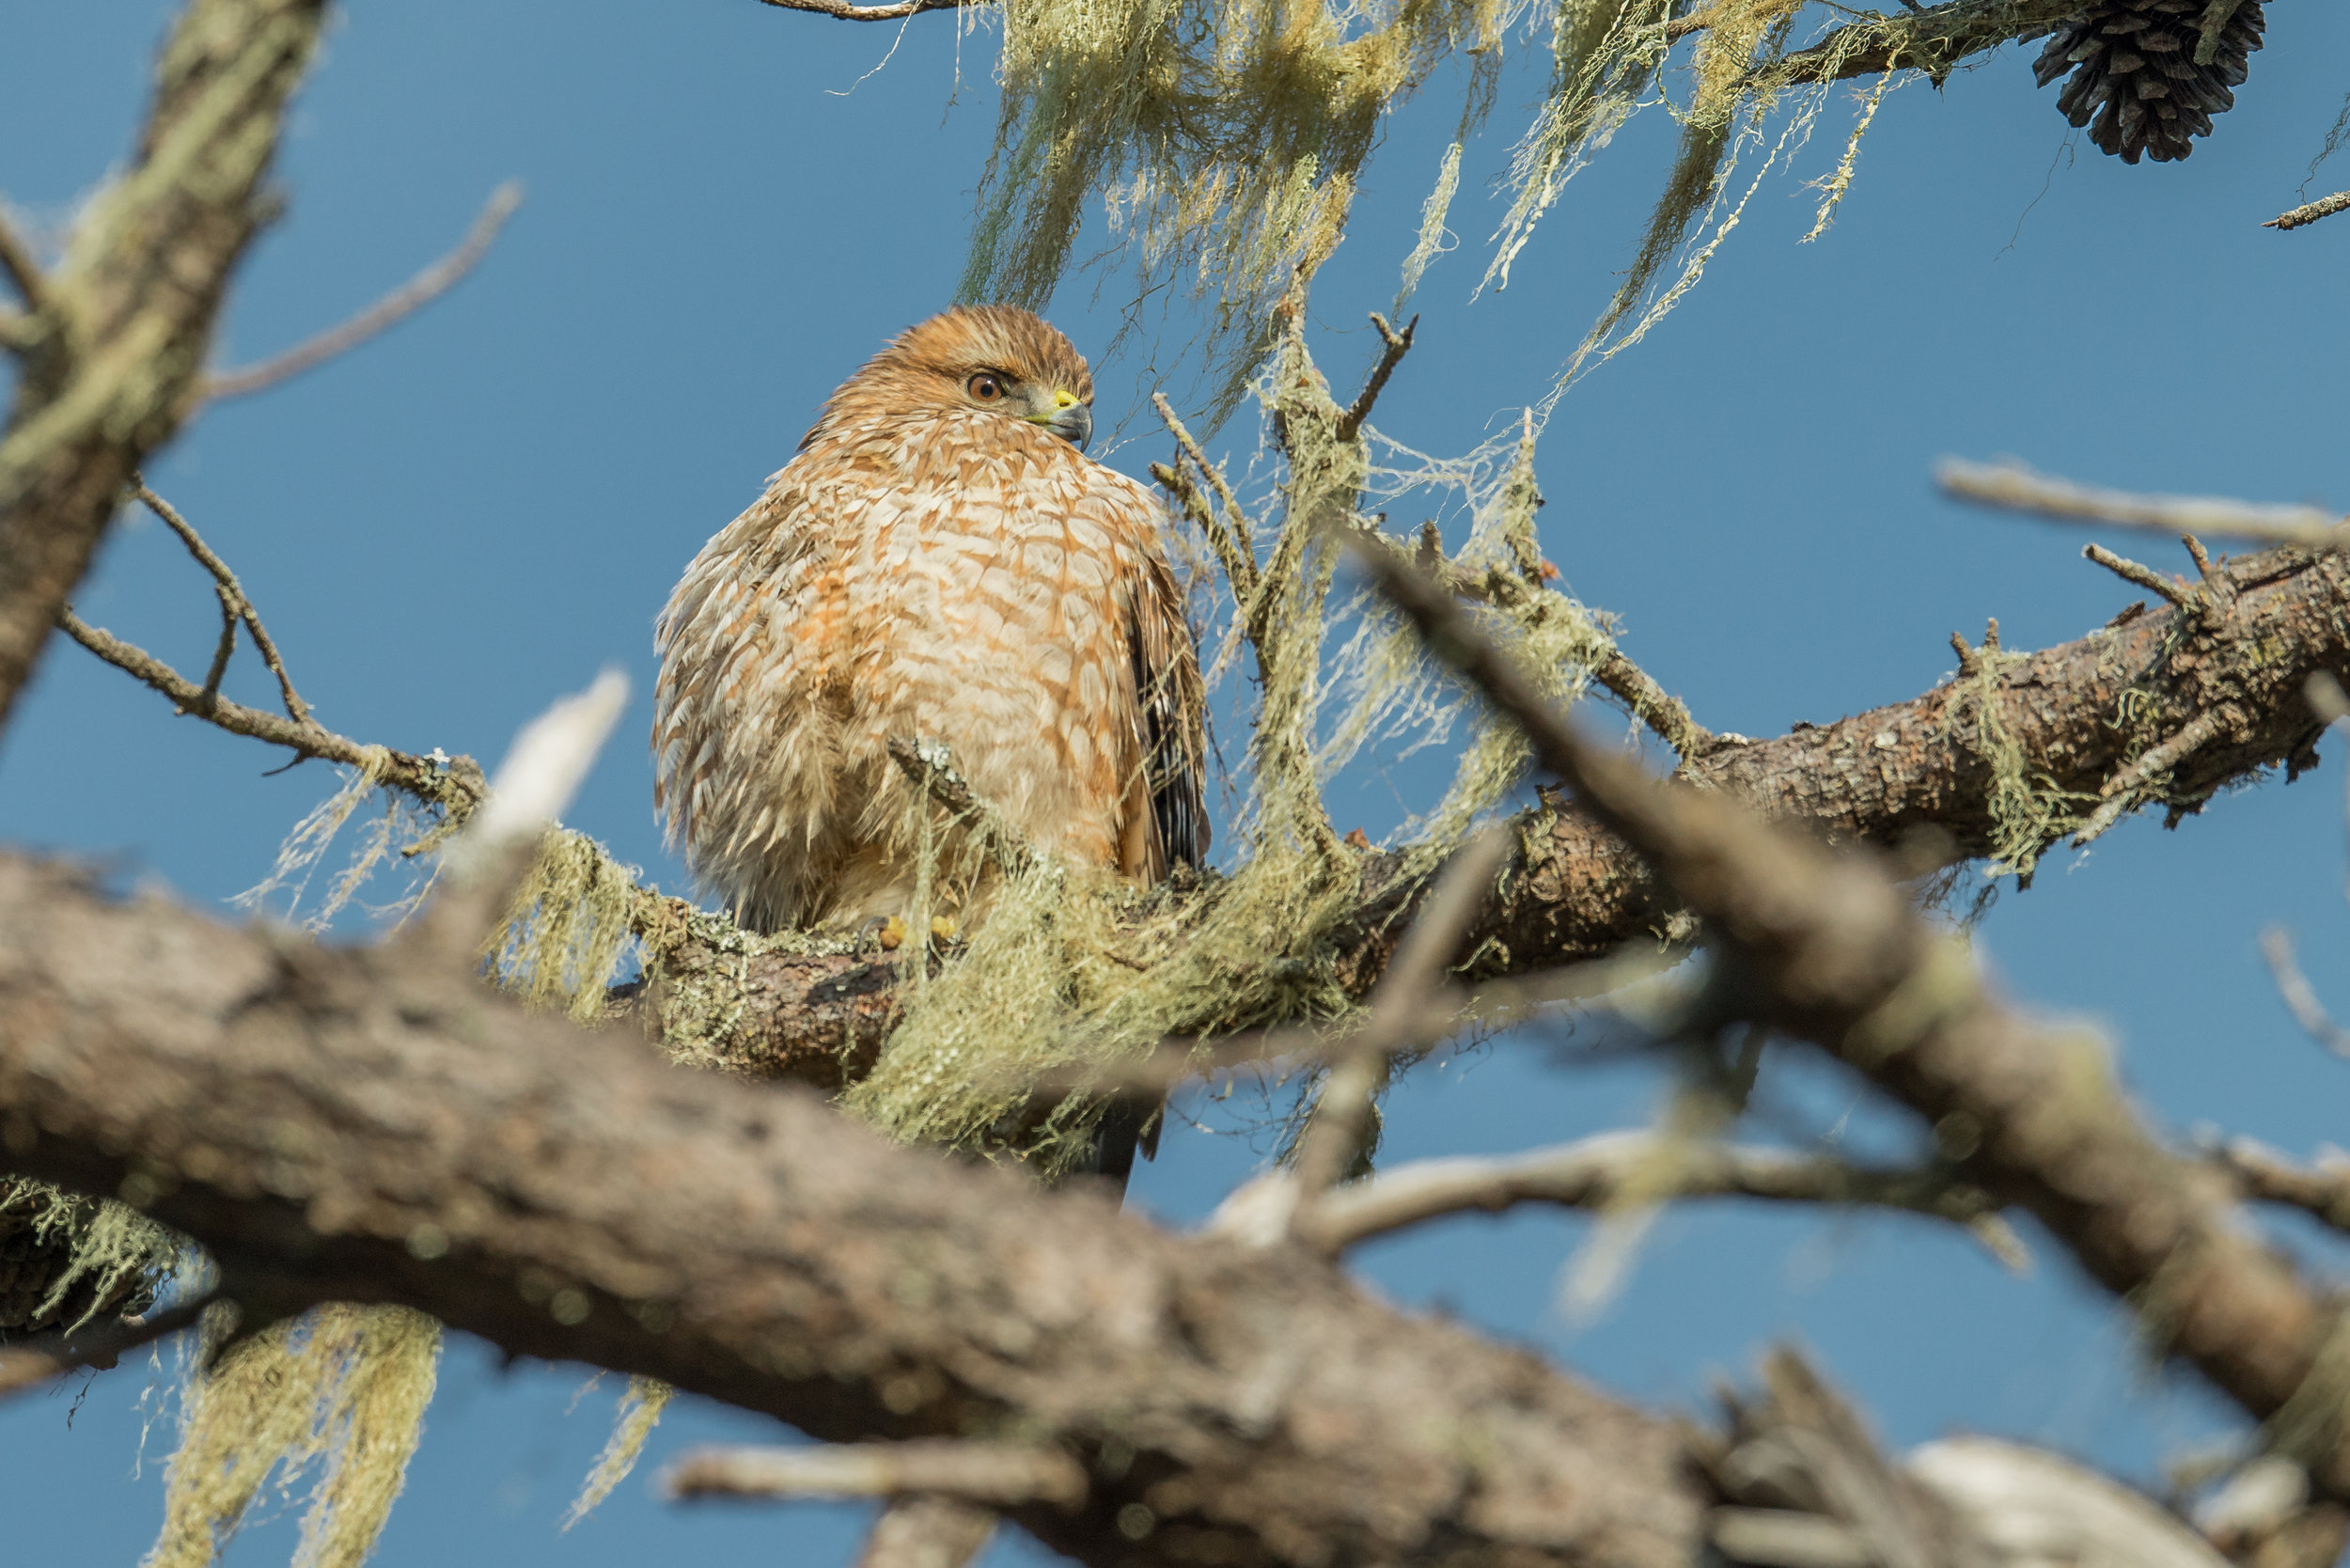 Red-shouldered Hawk (Buteo lineatus), Swanton Rd at Last Chance, SCZ (CA), 12-07-2018  The Red-shoulder Hawk is fairly common in Santa Cruz County (CA) but in NW Nevada they are hard to find. I was able to grab this photo even through the branches by using single point focus (D800 with 500mm f/4 lens, 500mm focal length, 1/1250s, f/5.6, ISO320, +.3EV).